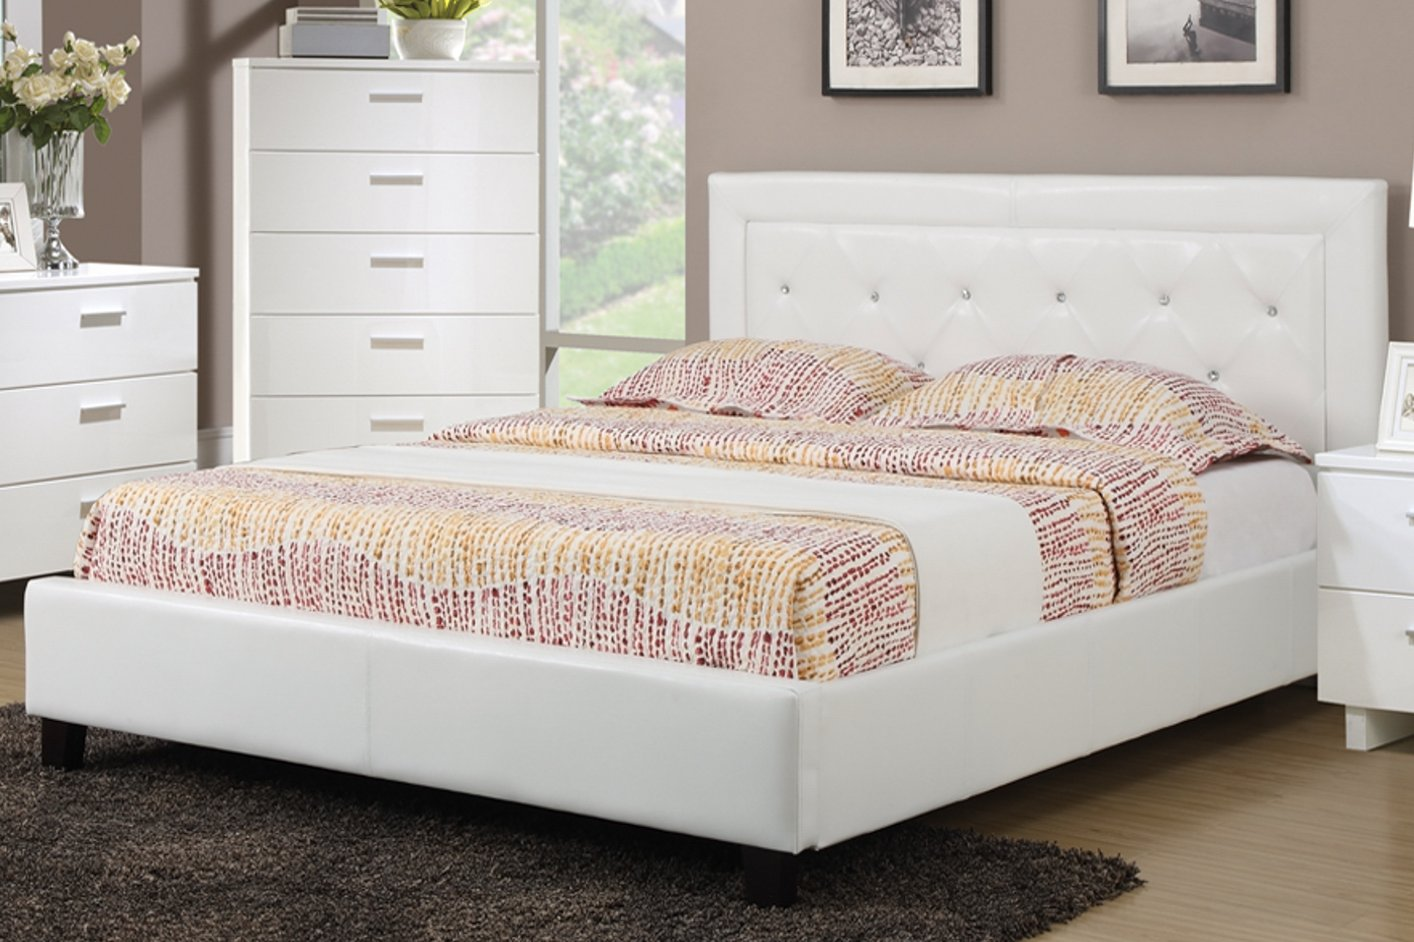 White Wood Full Size Bed - Steal-A-Sofa Furniture Outlet Los ...